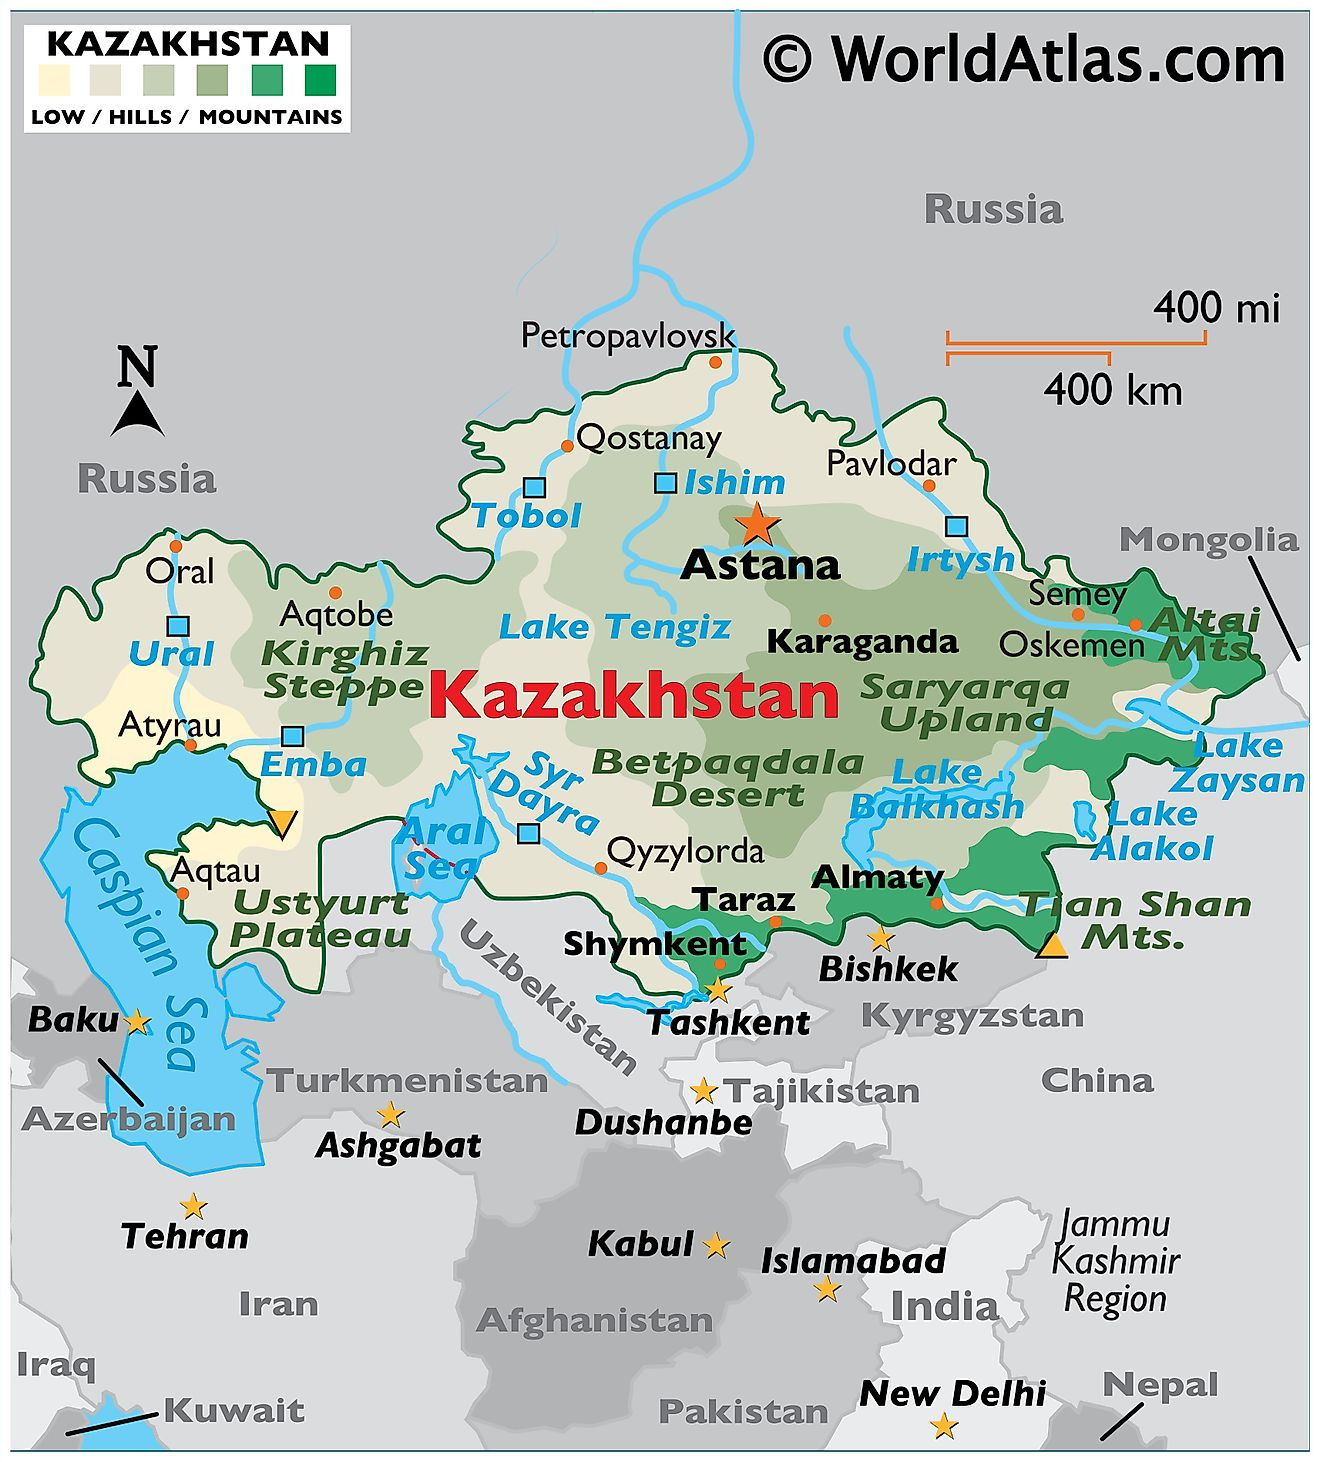 Physical Map of Kazakhstan showing relief, mountains, highest point and lowest points, major lakes, rivers, important urban centres, etc.